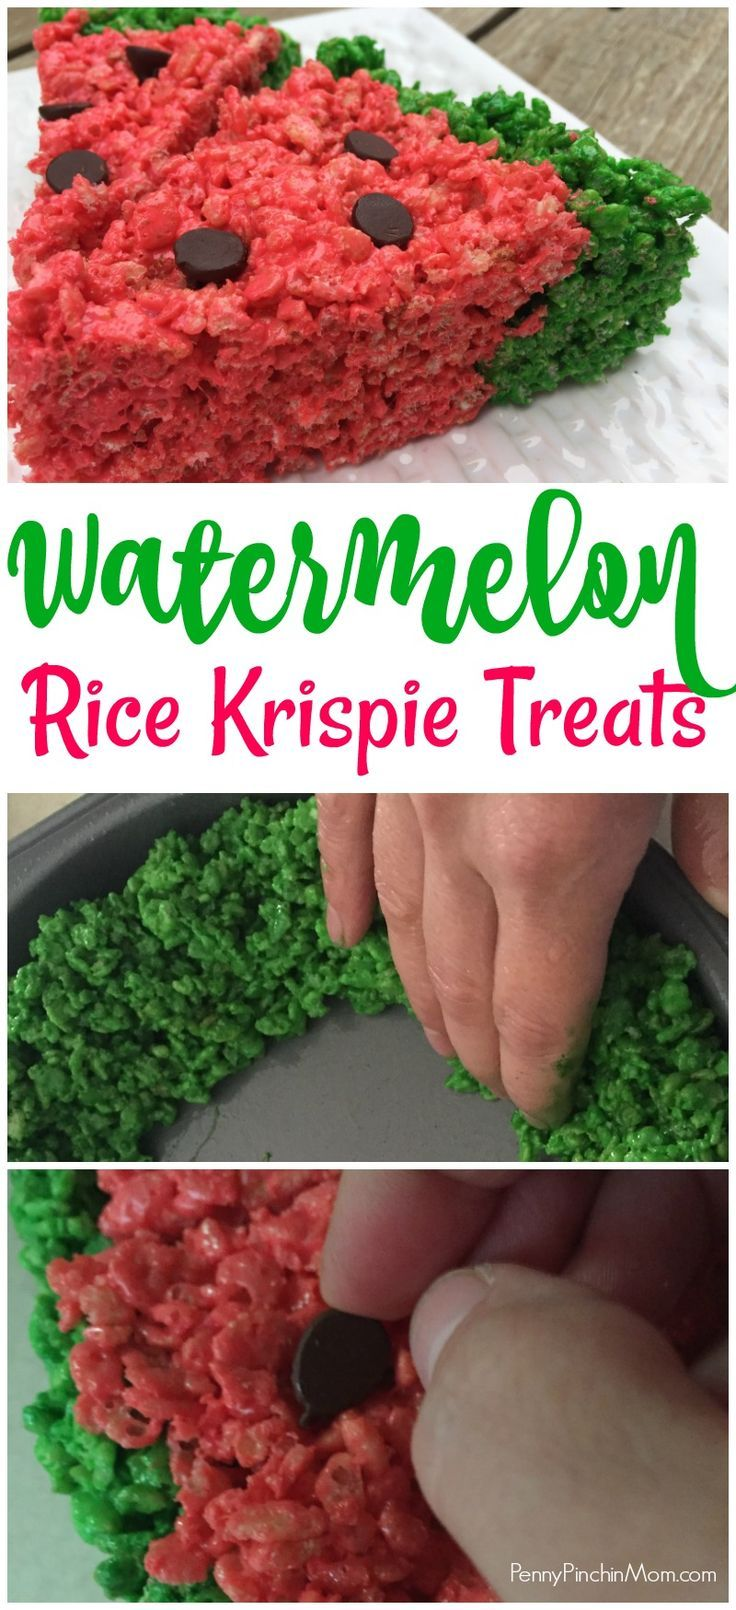 Watermelon Rice Krispie Treats #summerfunideasforkids